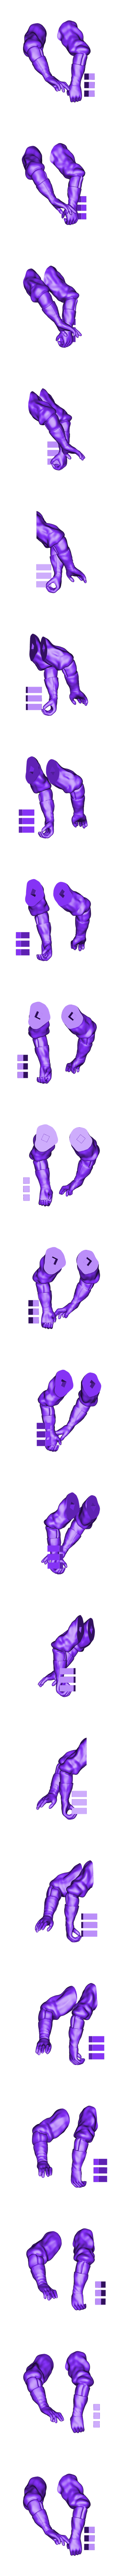 Arms_Pins.stl Download free STL file MOVED-Darth Maul with Multi-Color Head • 3D printable model, Double_Alfa_3D